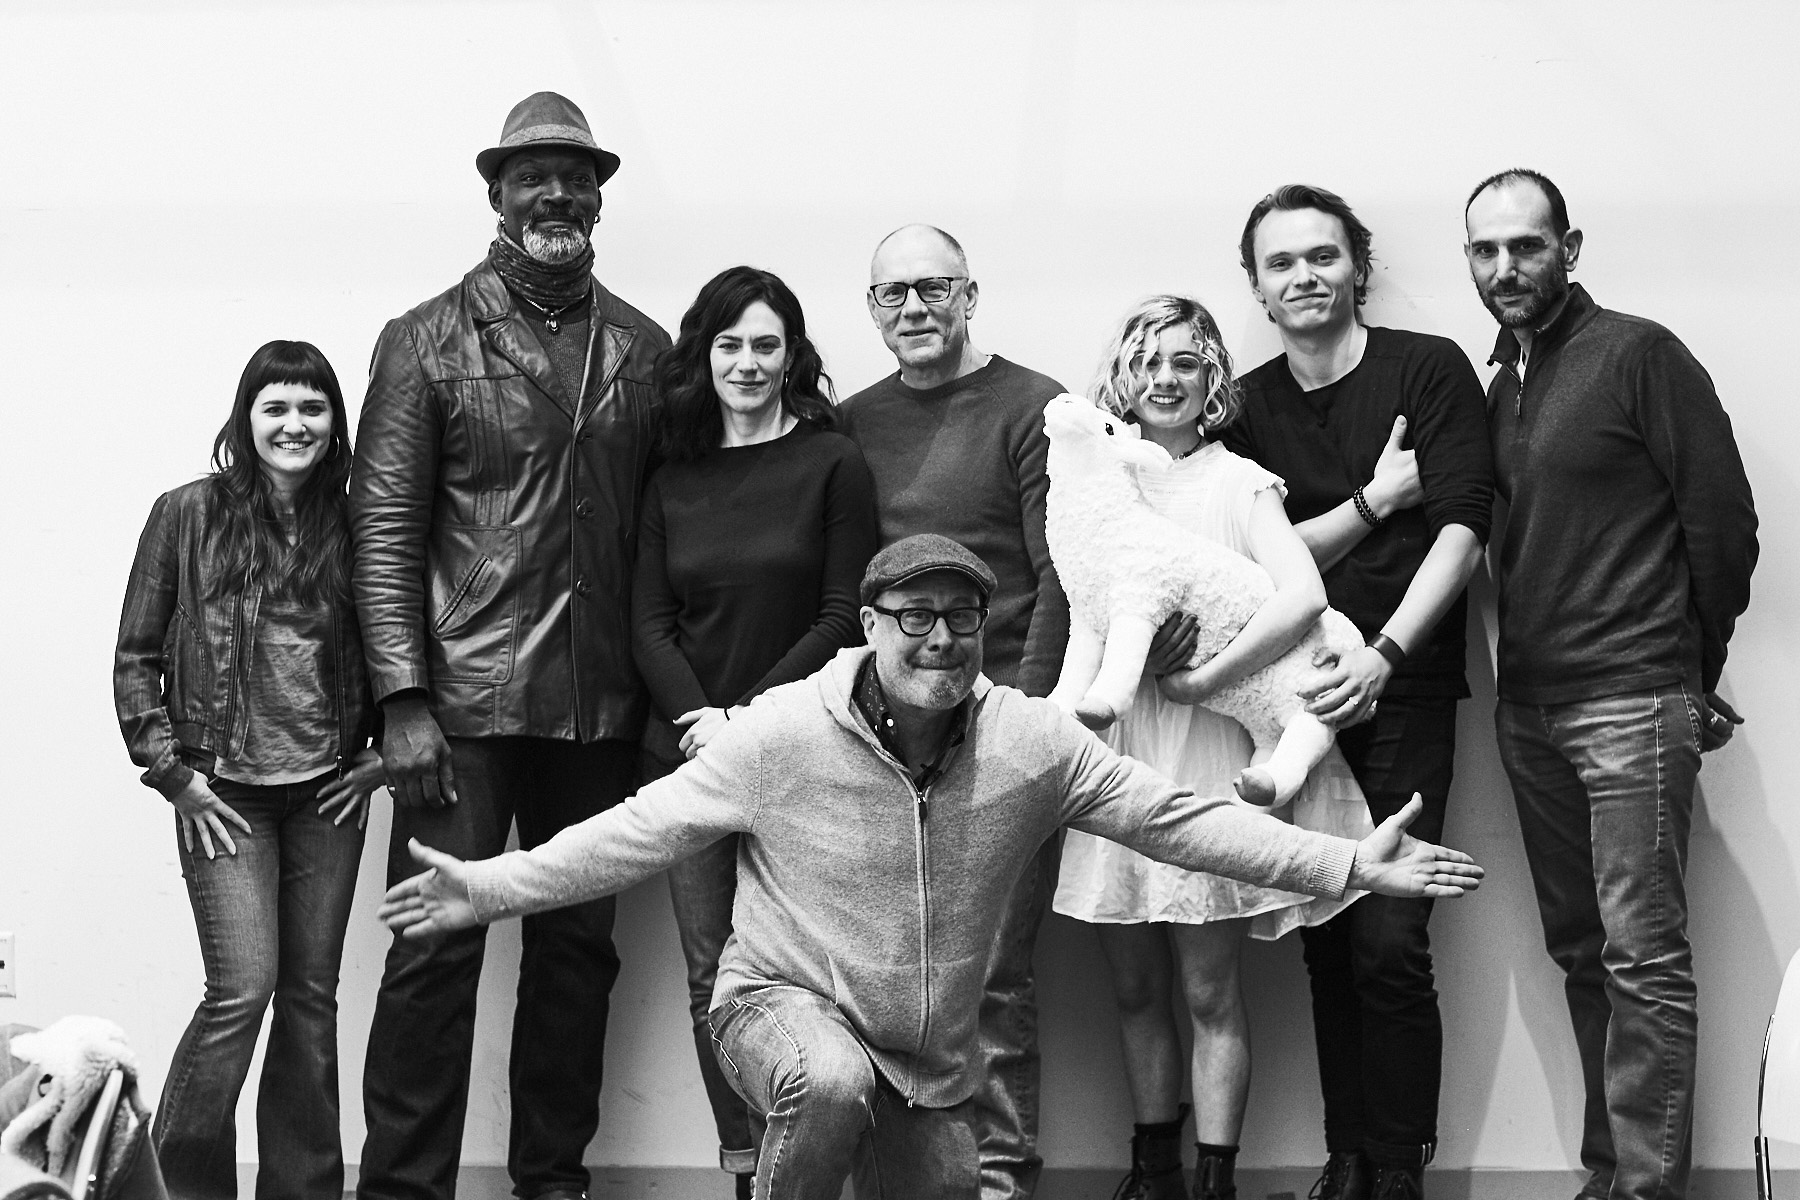 The cast of <i>Curse of the Starving Class</i> with director Terry Kinney.